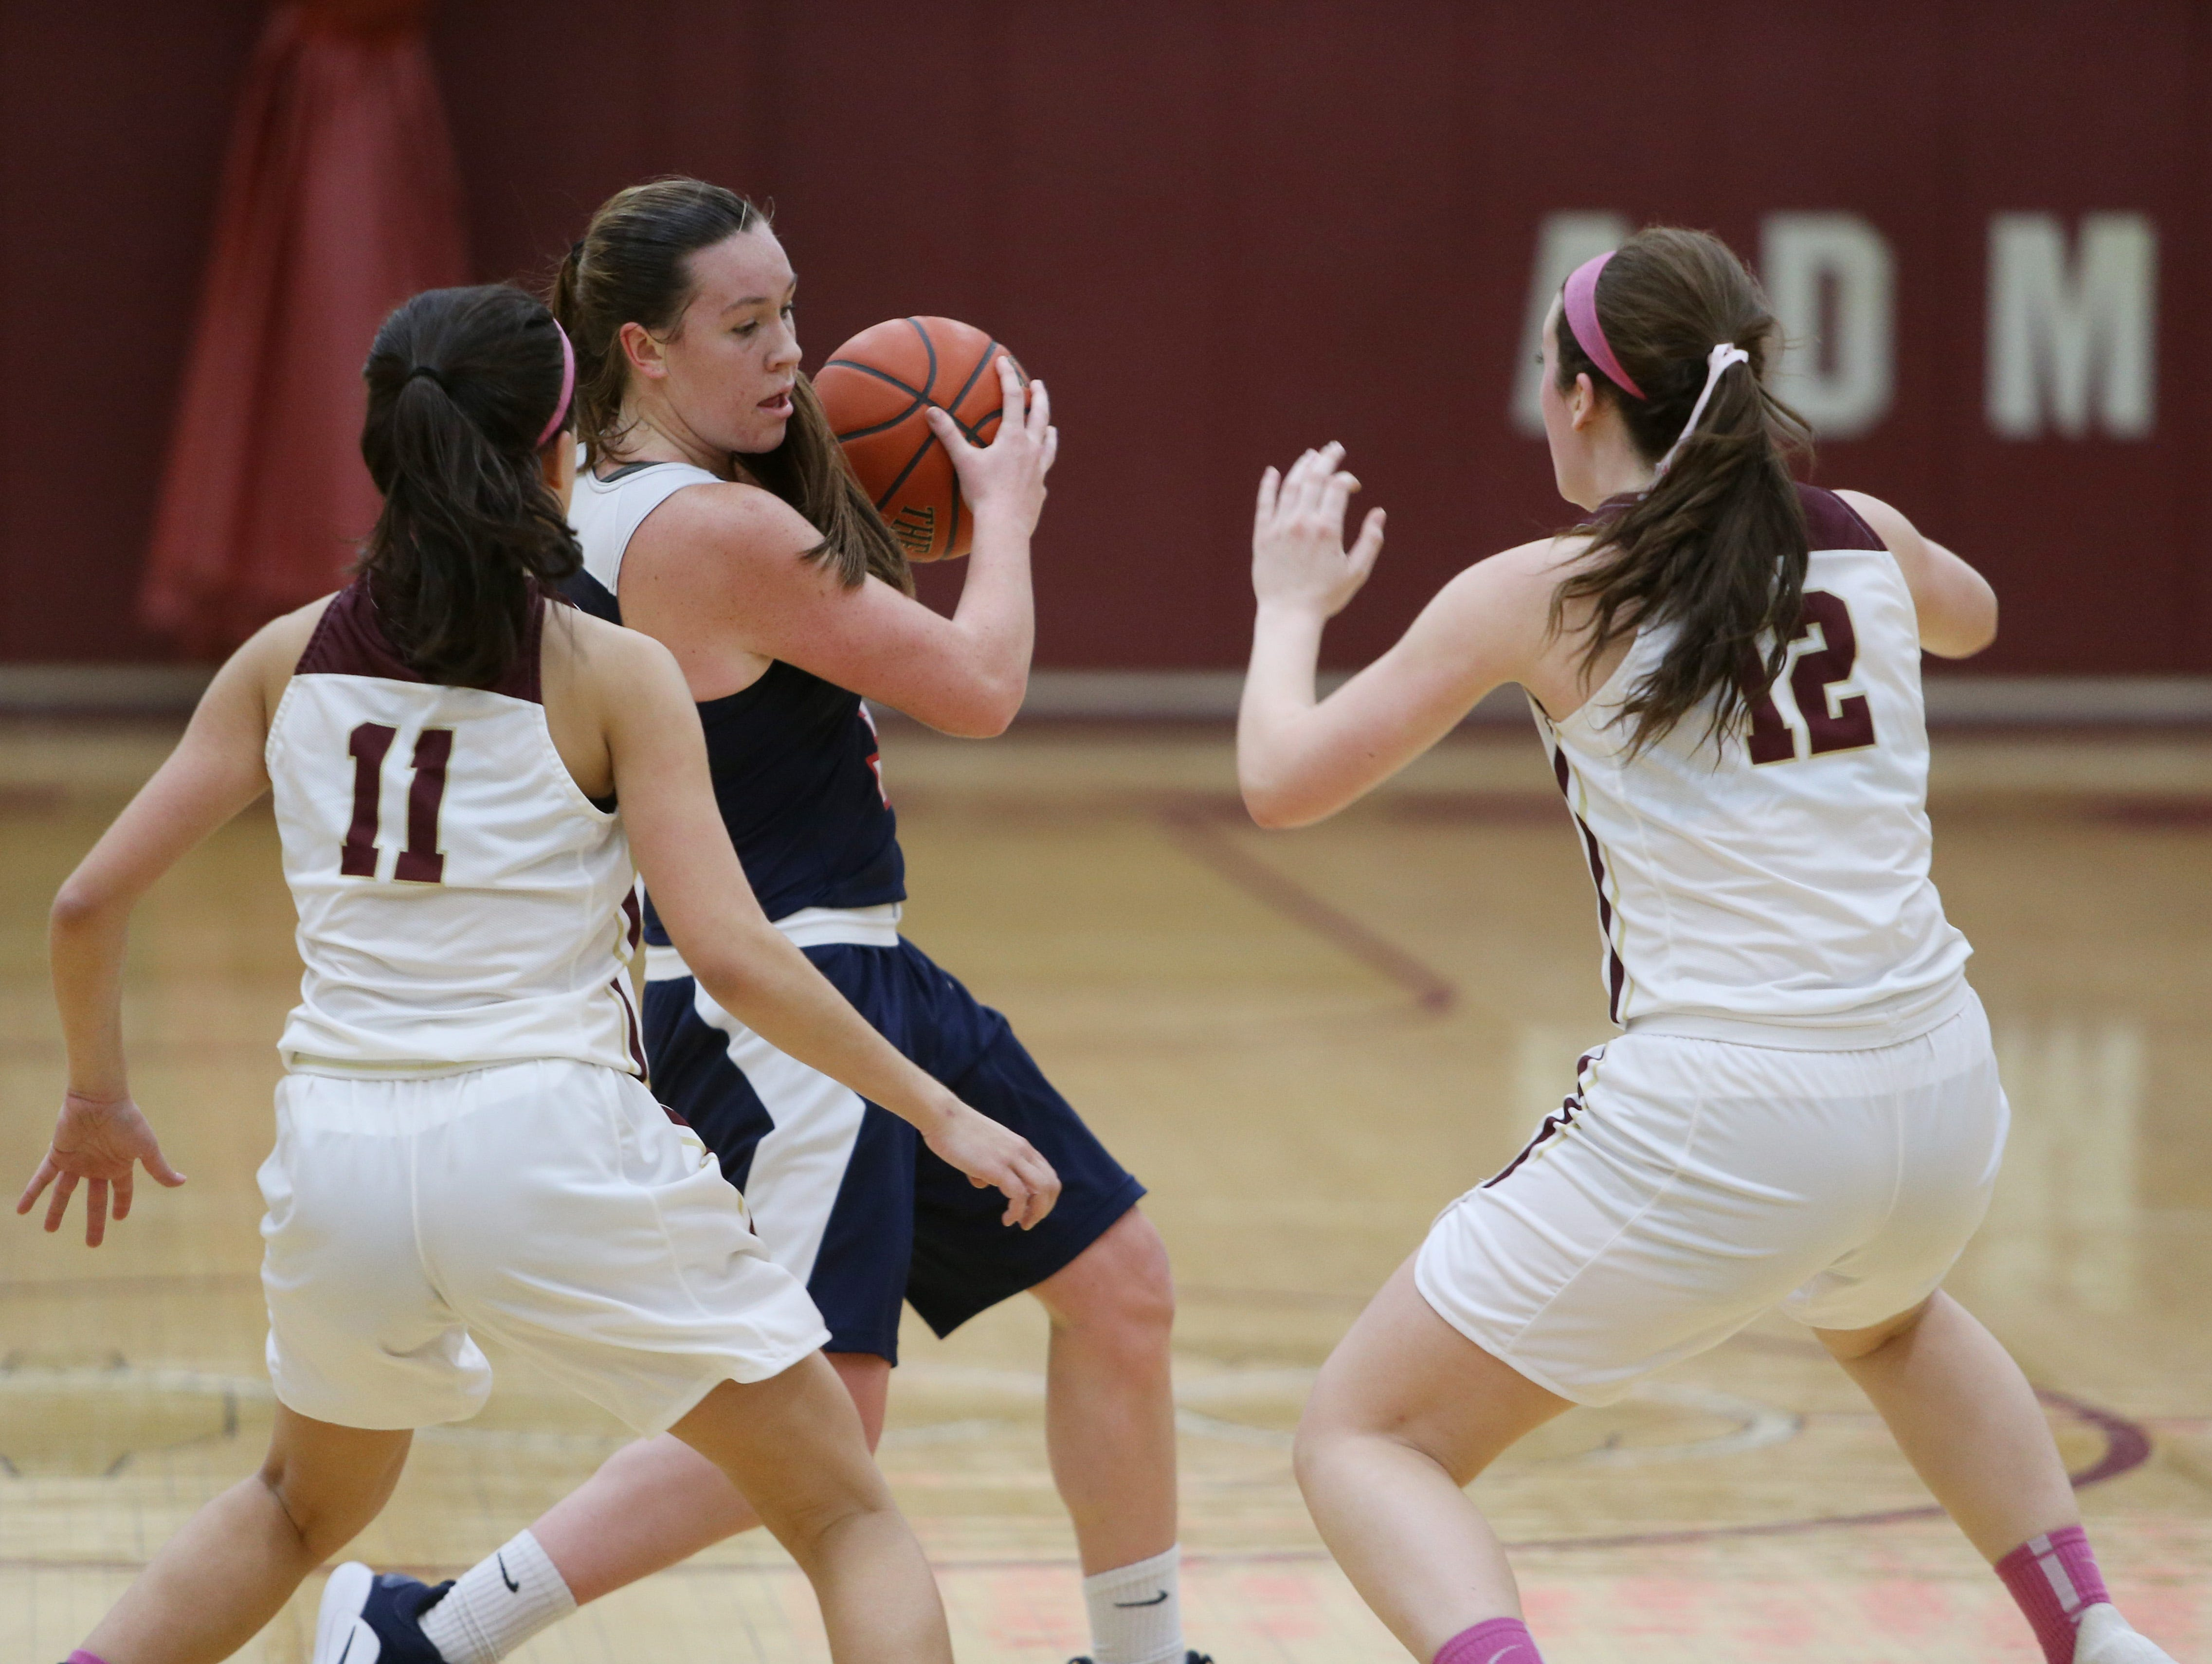 Ketcham's Katie Wall fends off Arlington's, from left, Camille Loussedes and Molly Stephens during Wednesday's game in Freedom Plains on February 6, 2019.